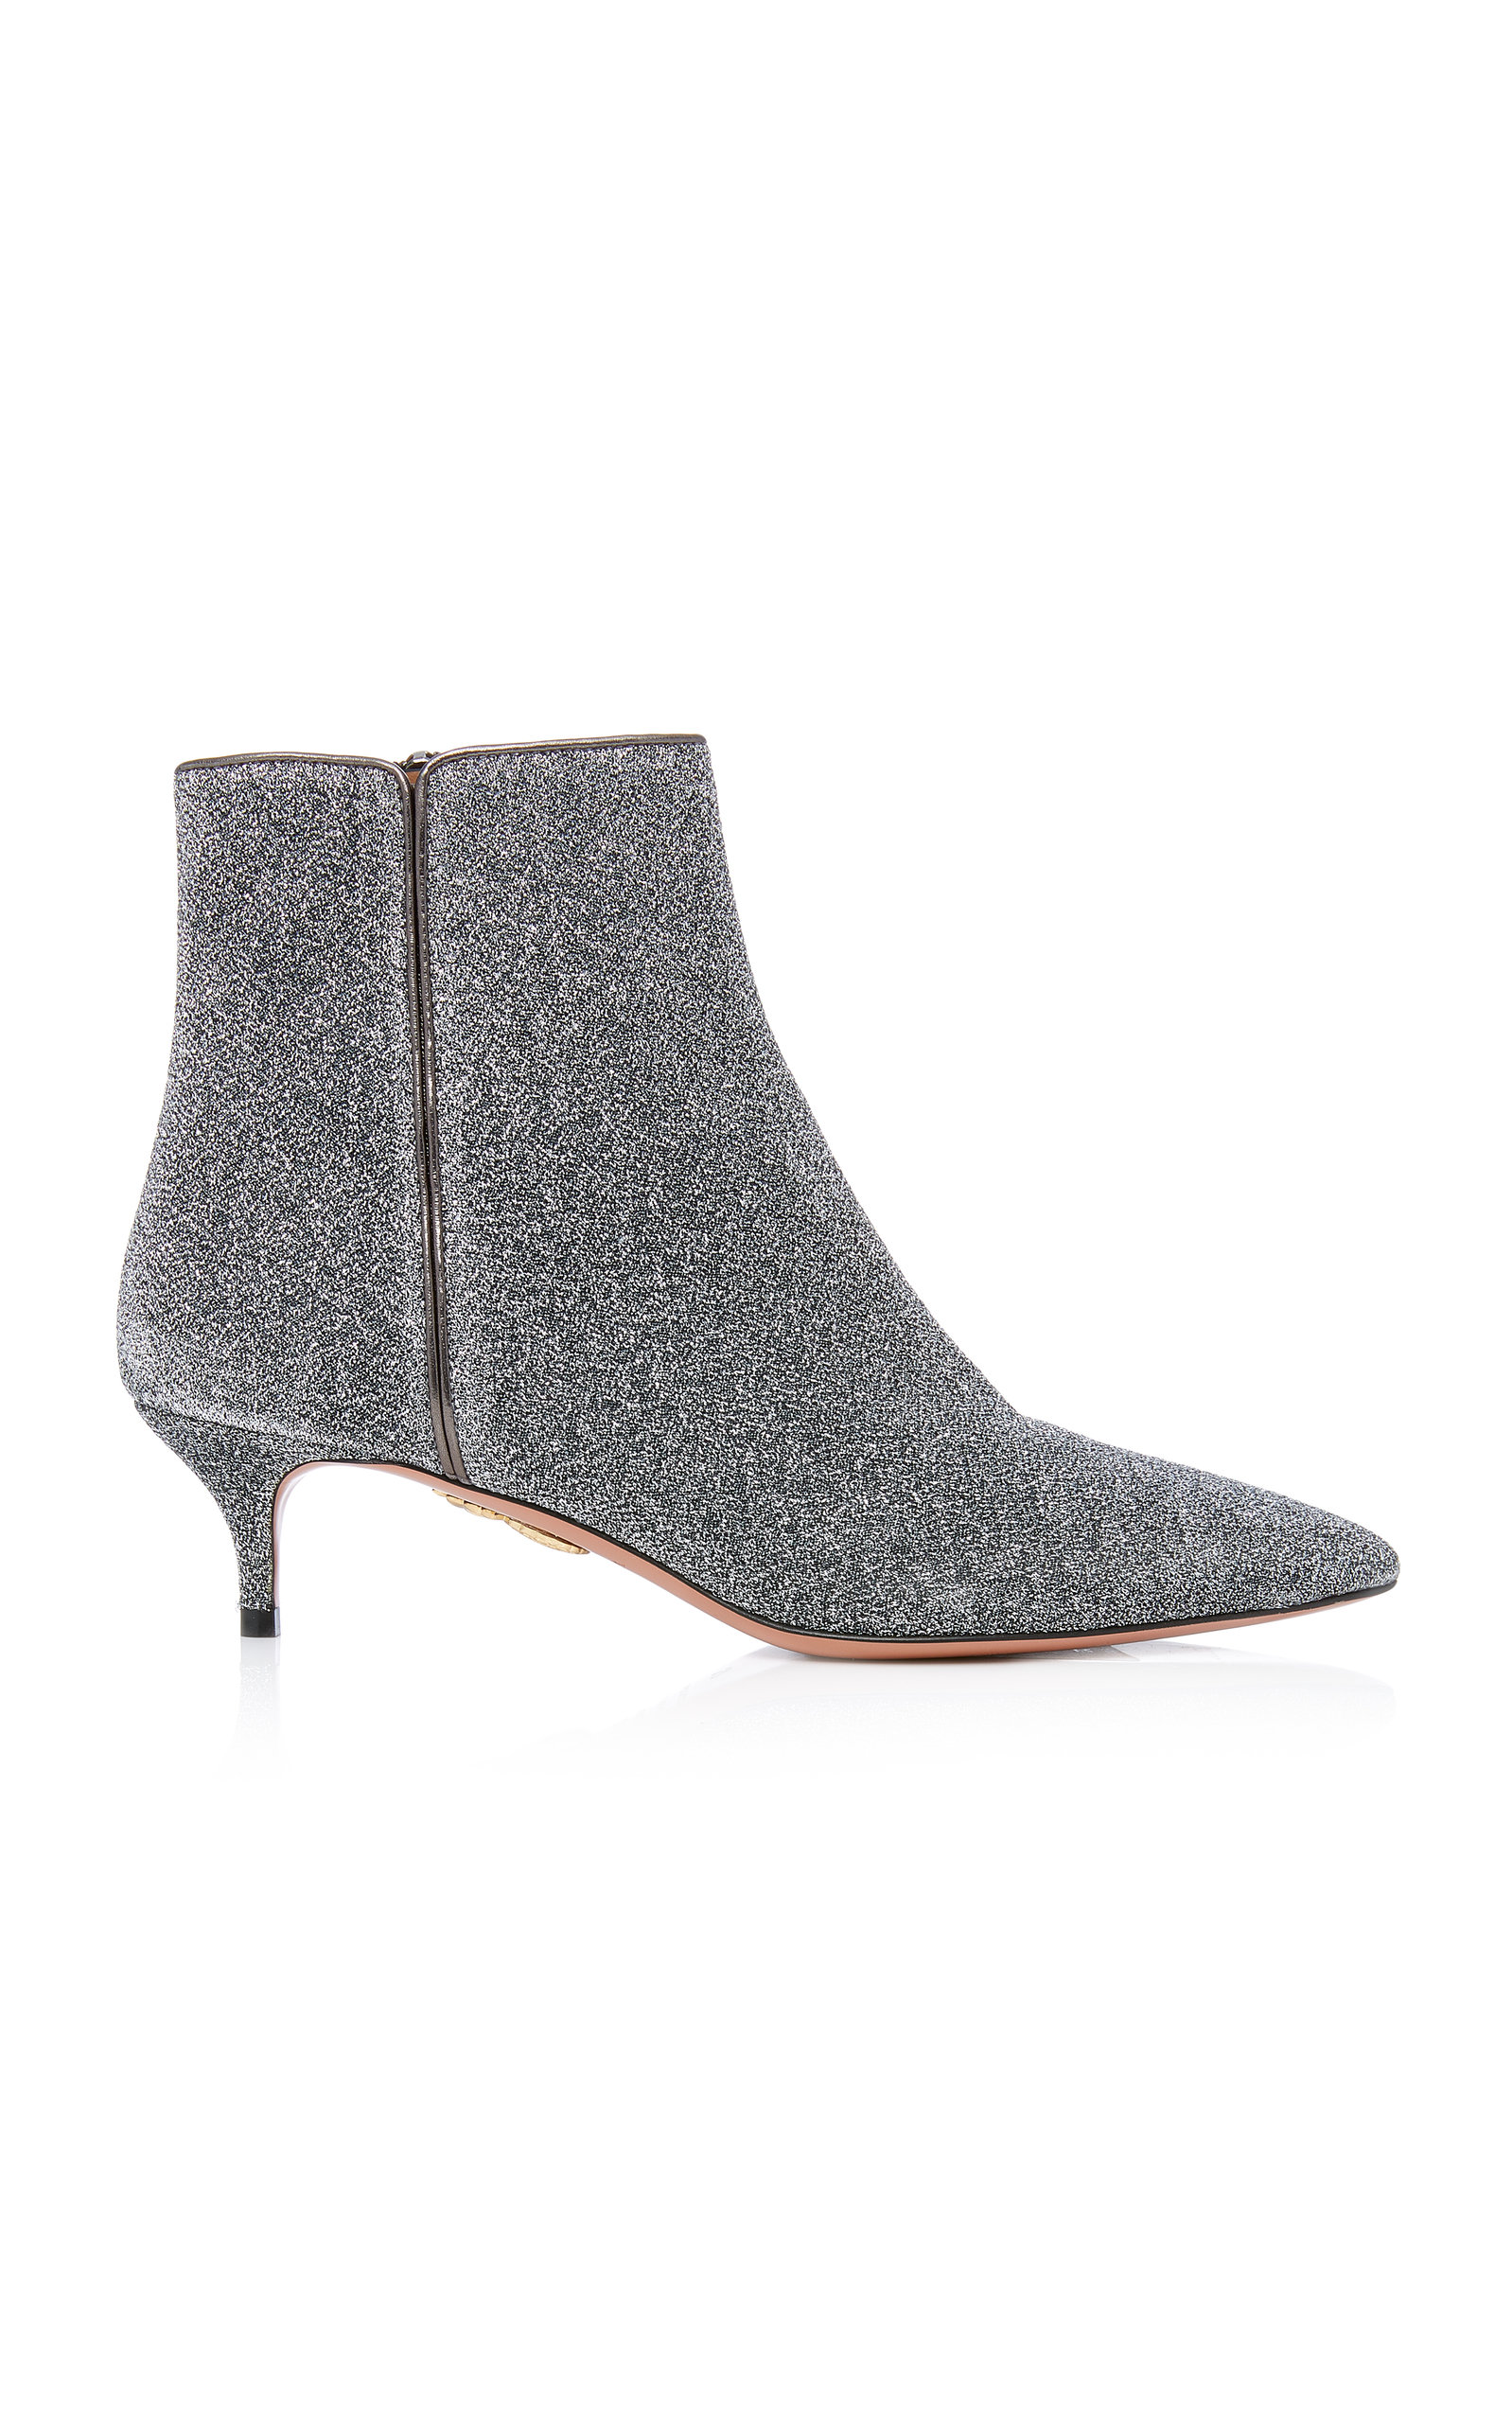 Quant Metallic Stretch-Knit Ankle Boots, Silver